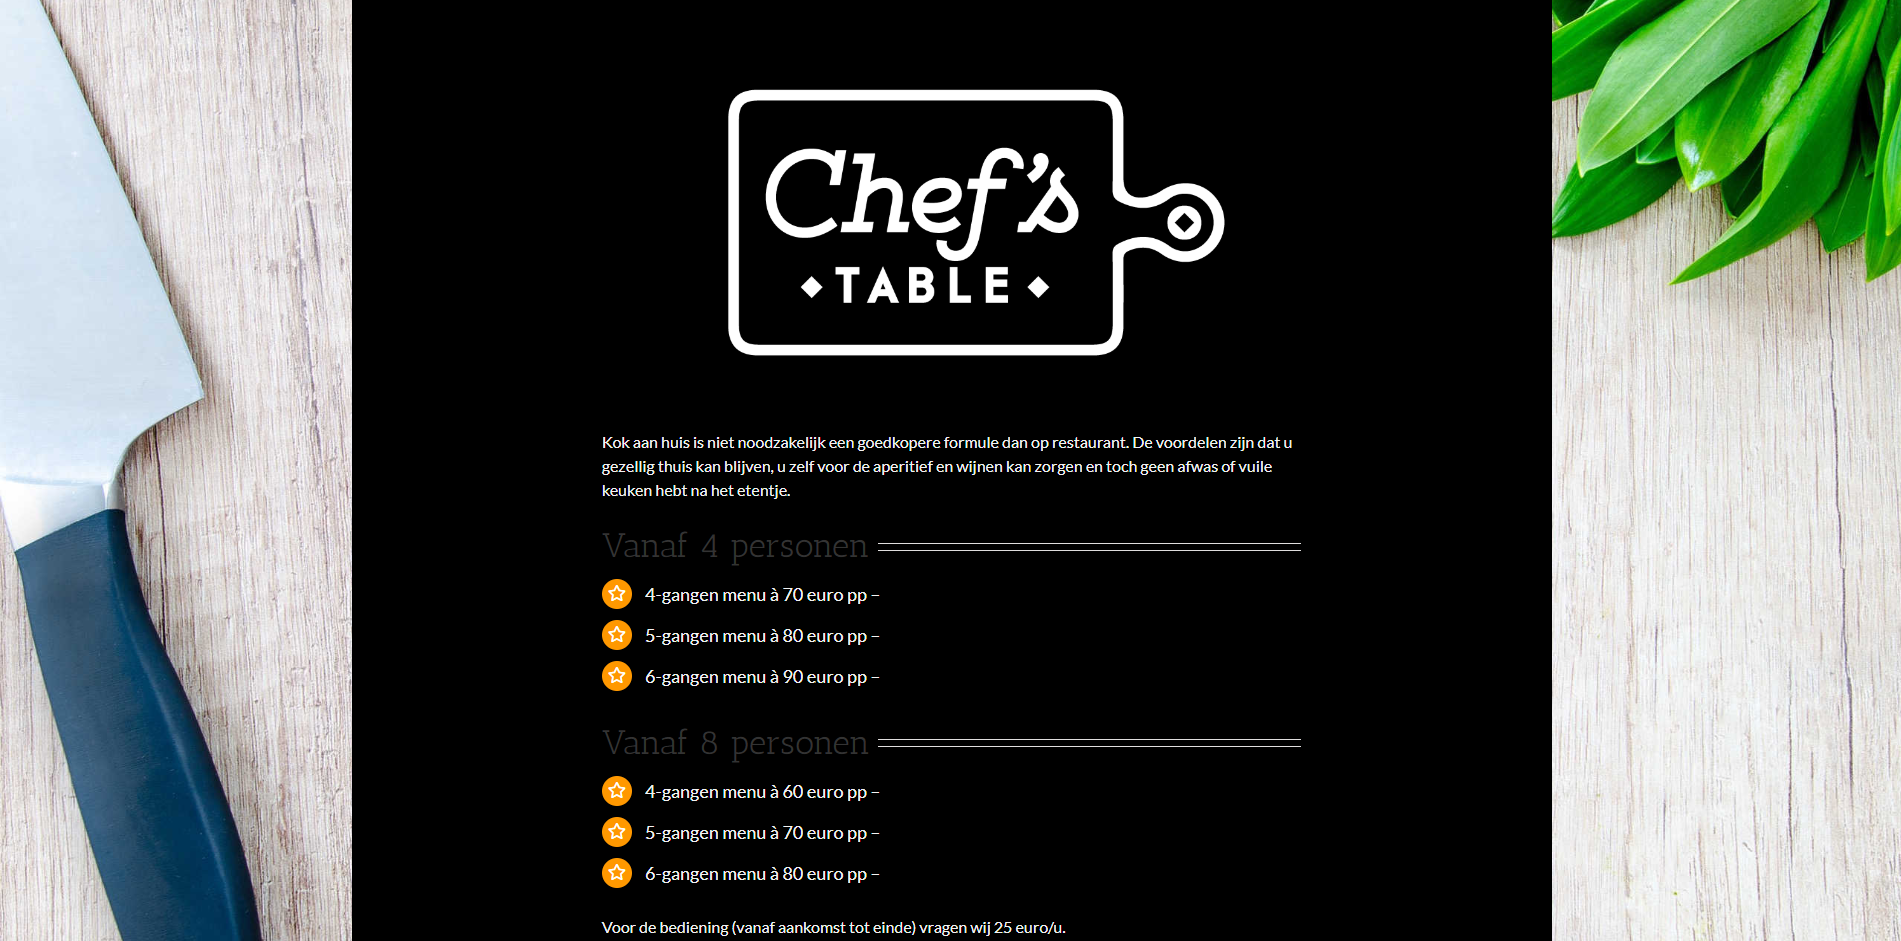 Chef's-table_1